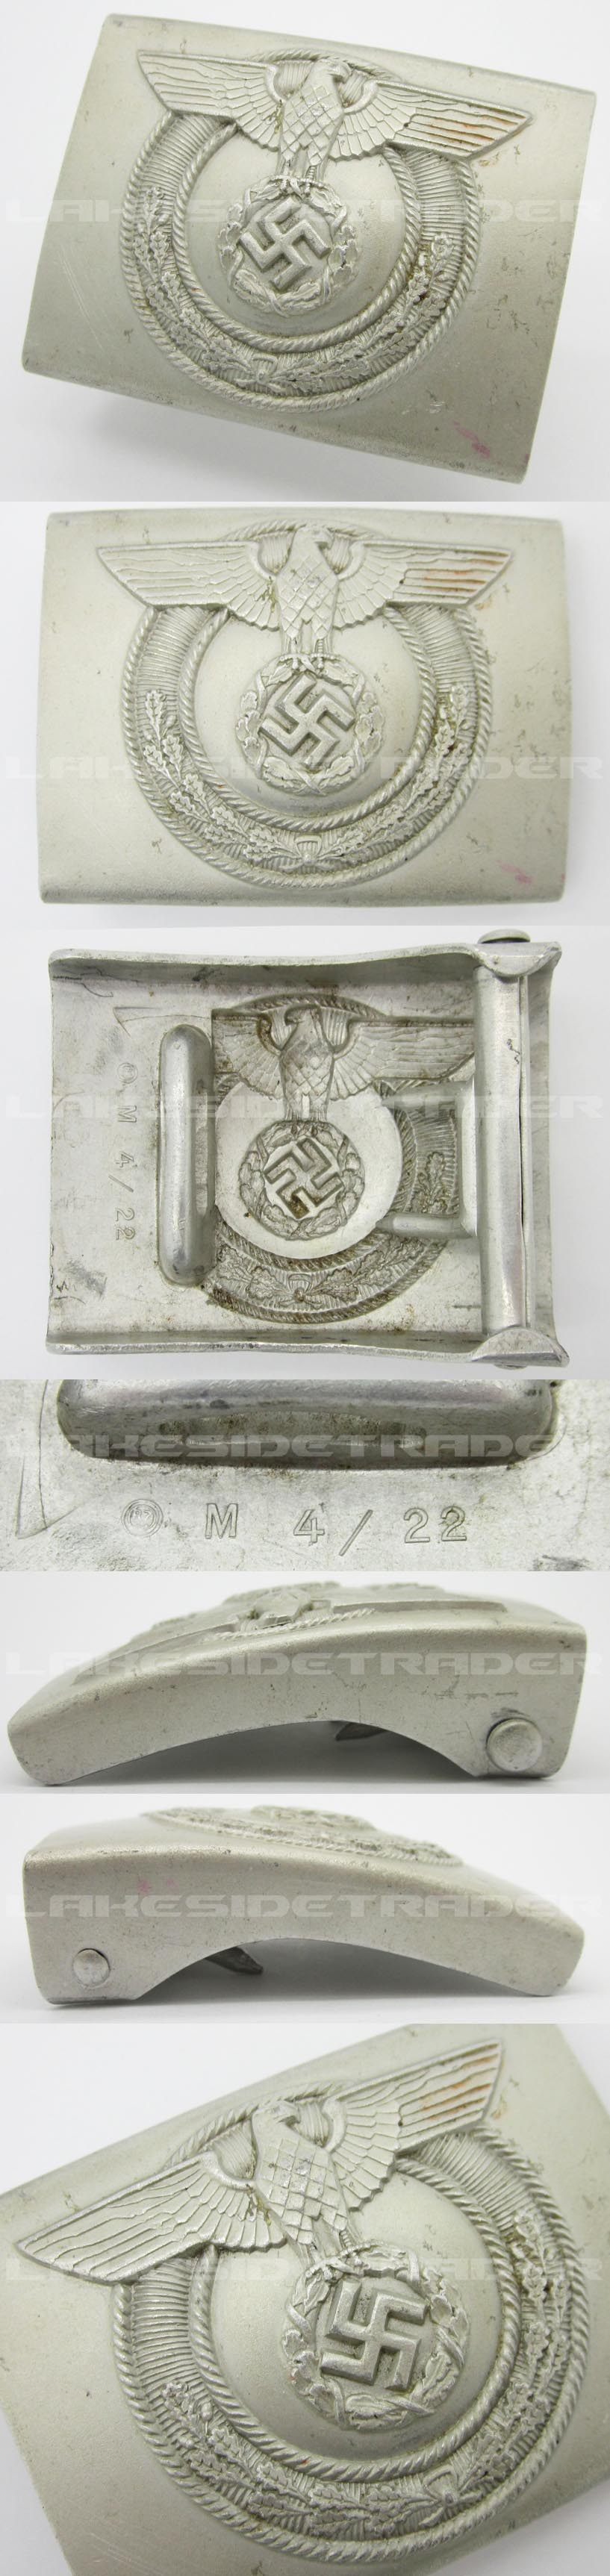 SA Wehrmannshaften Belt Buckle by RZM M4/22